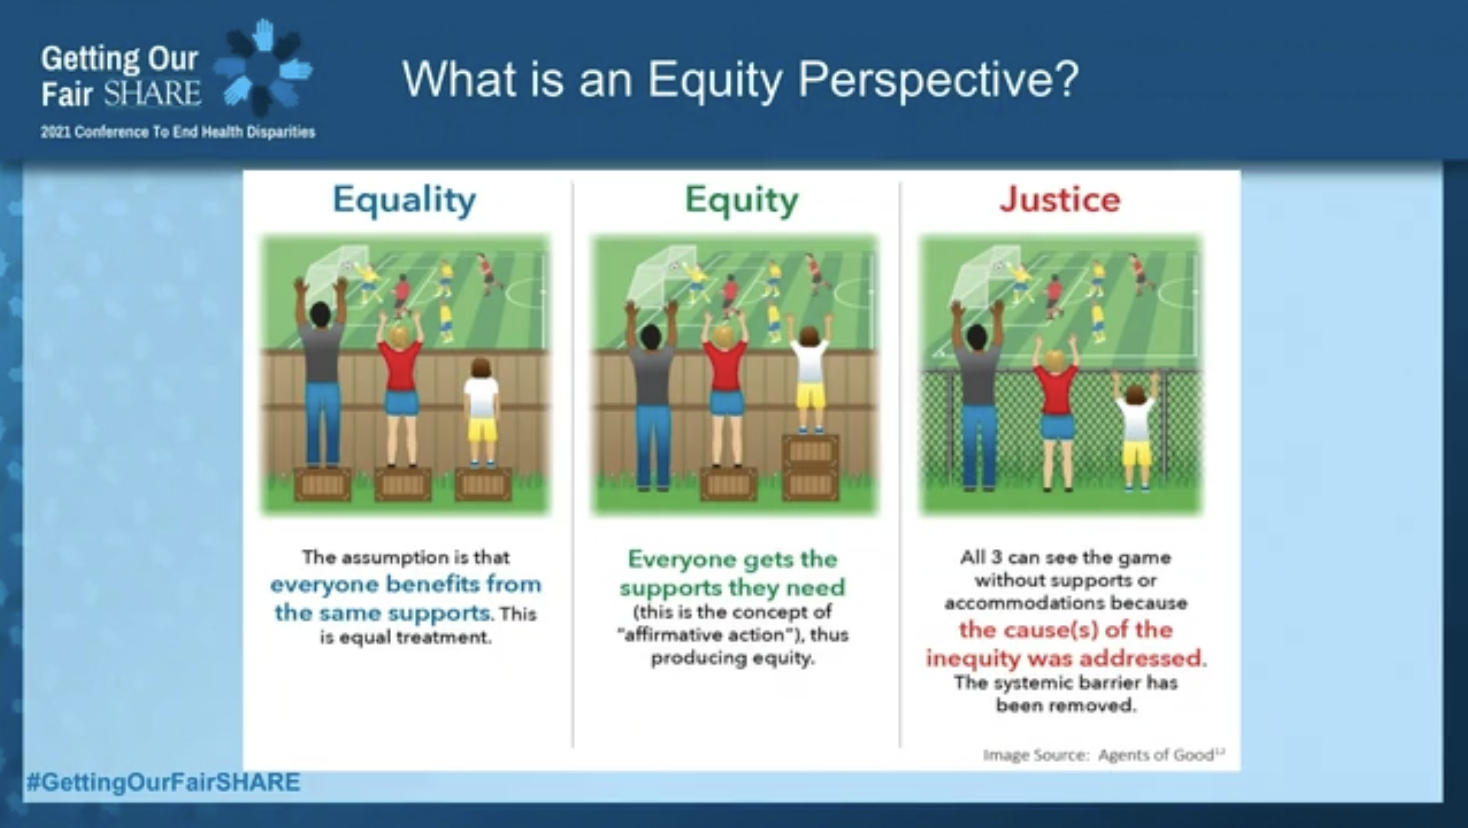 Health disparities infographic to understand obstacles to health equity in Colorado